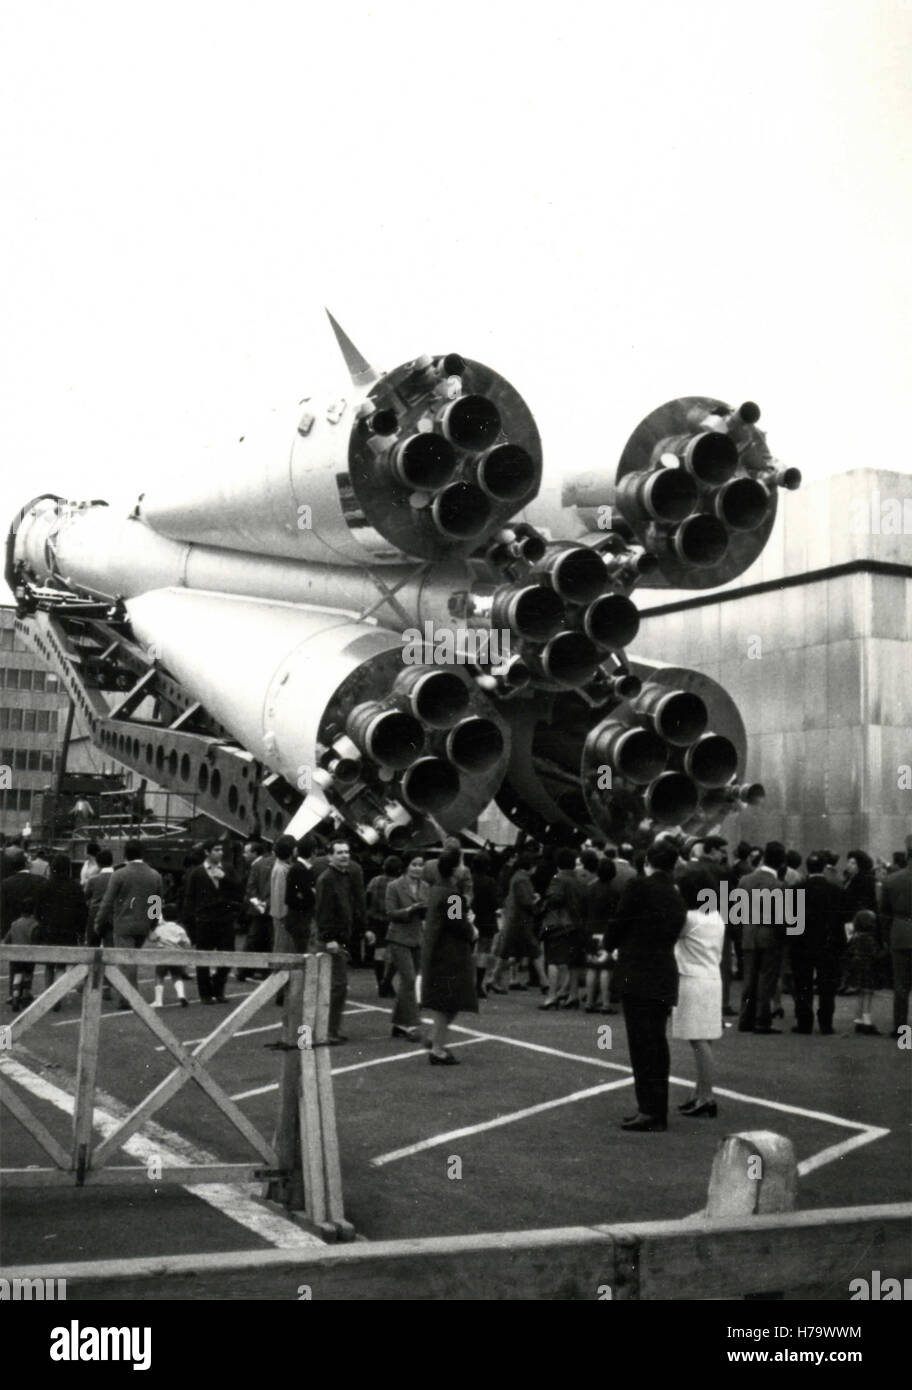 The exhausts of a Boctok rocket, USSR - Stock Image